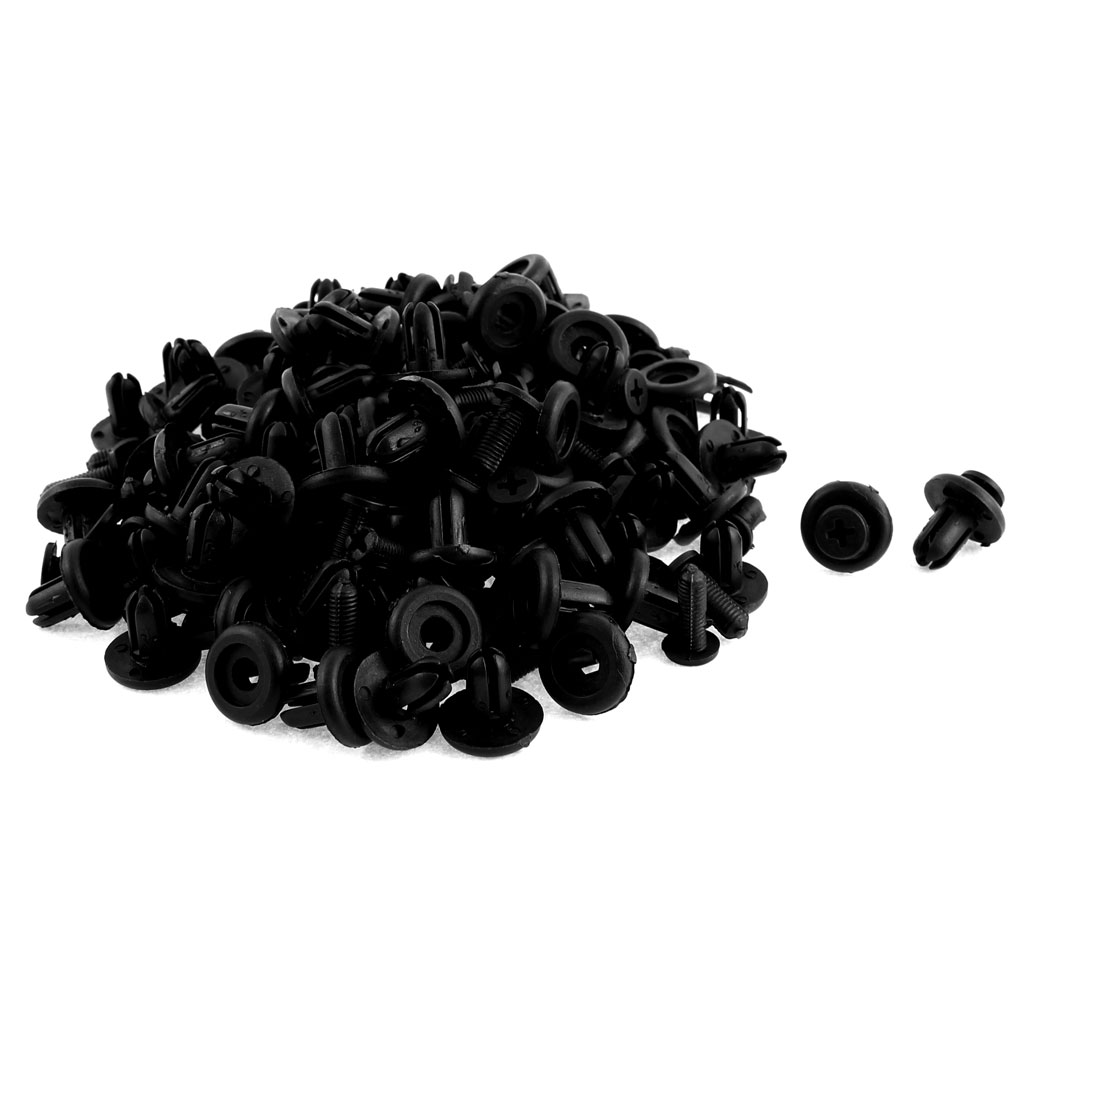 Auto Car 9mm Hole Black Plastic Rivet Fastener Bumper Fender Clips 100pcs